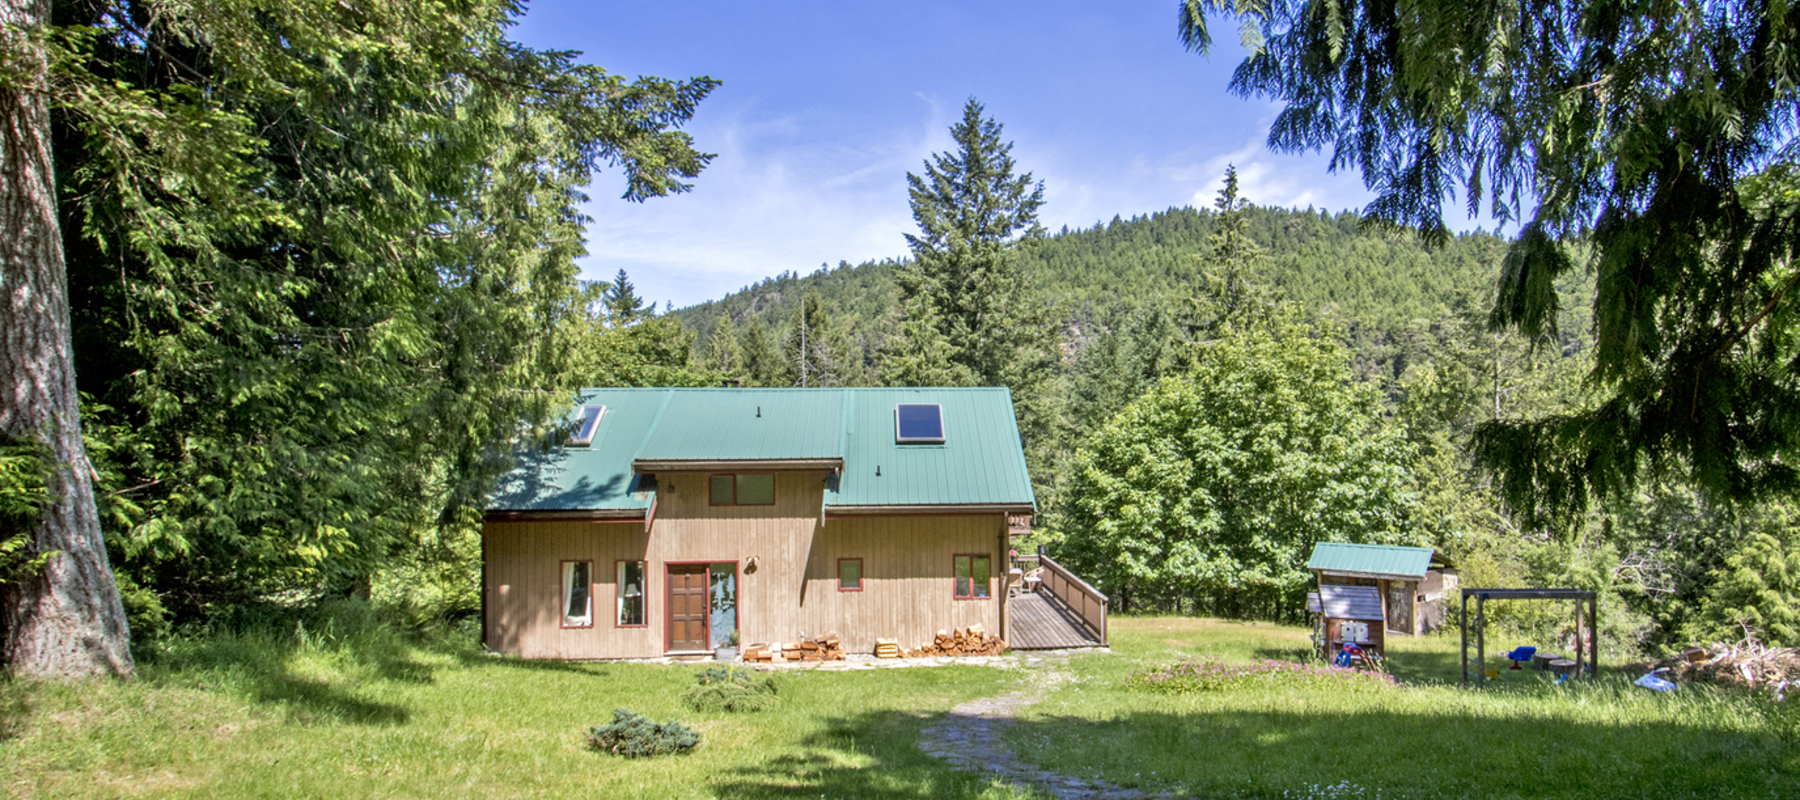 Cottage in the Woods, 113 Narvaez Bay Rd, Saturna Island